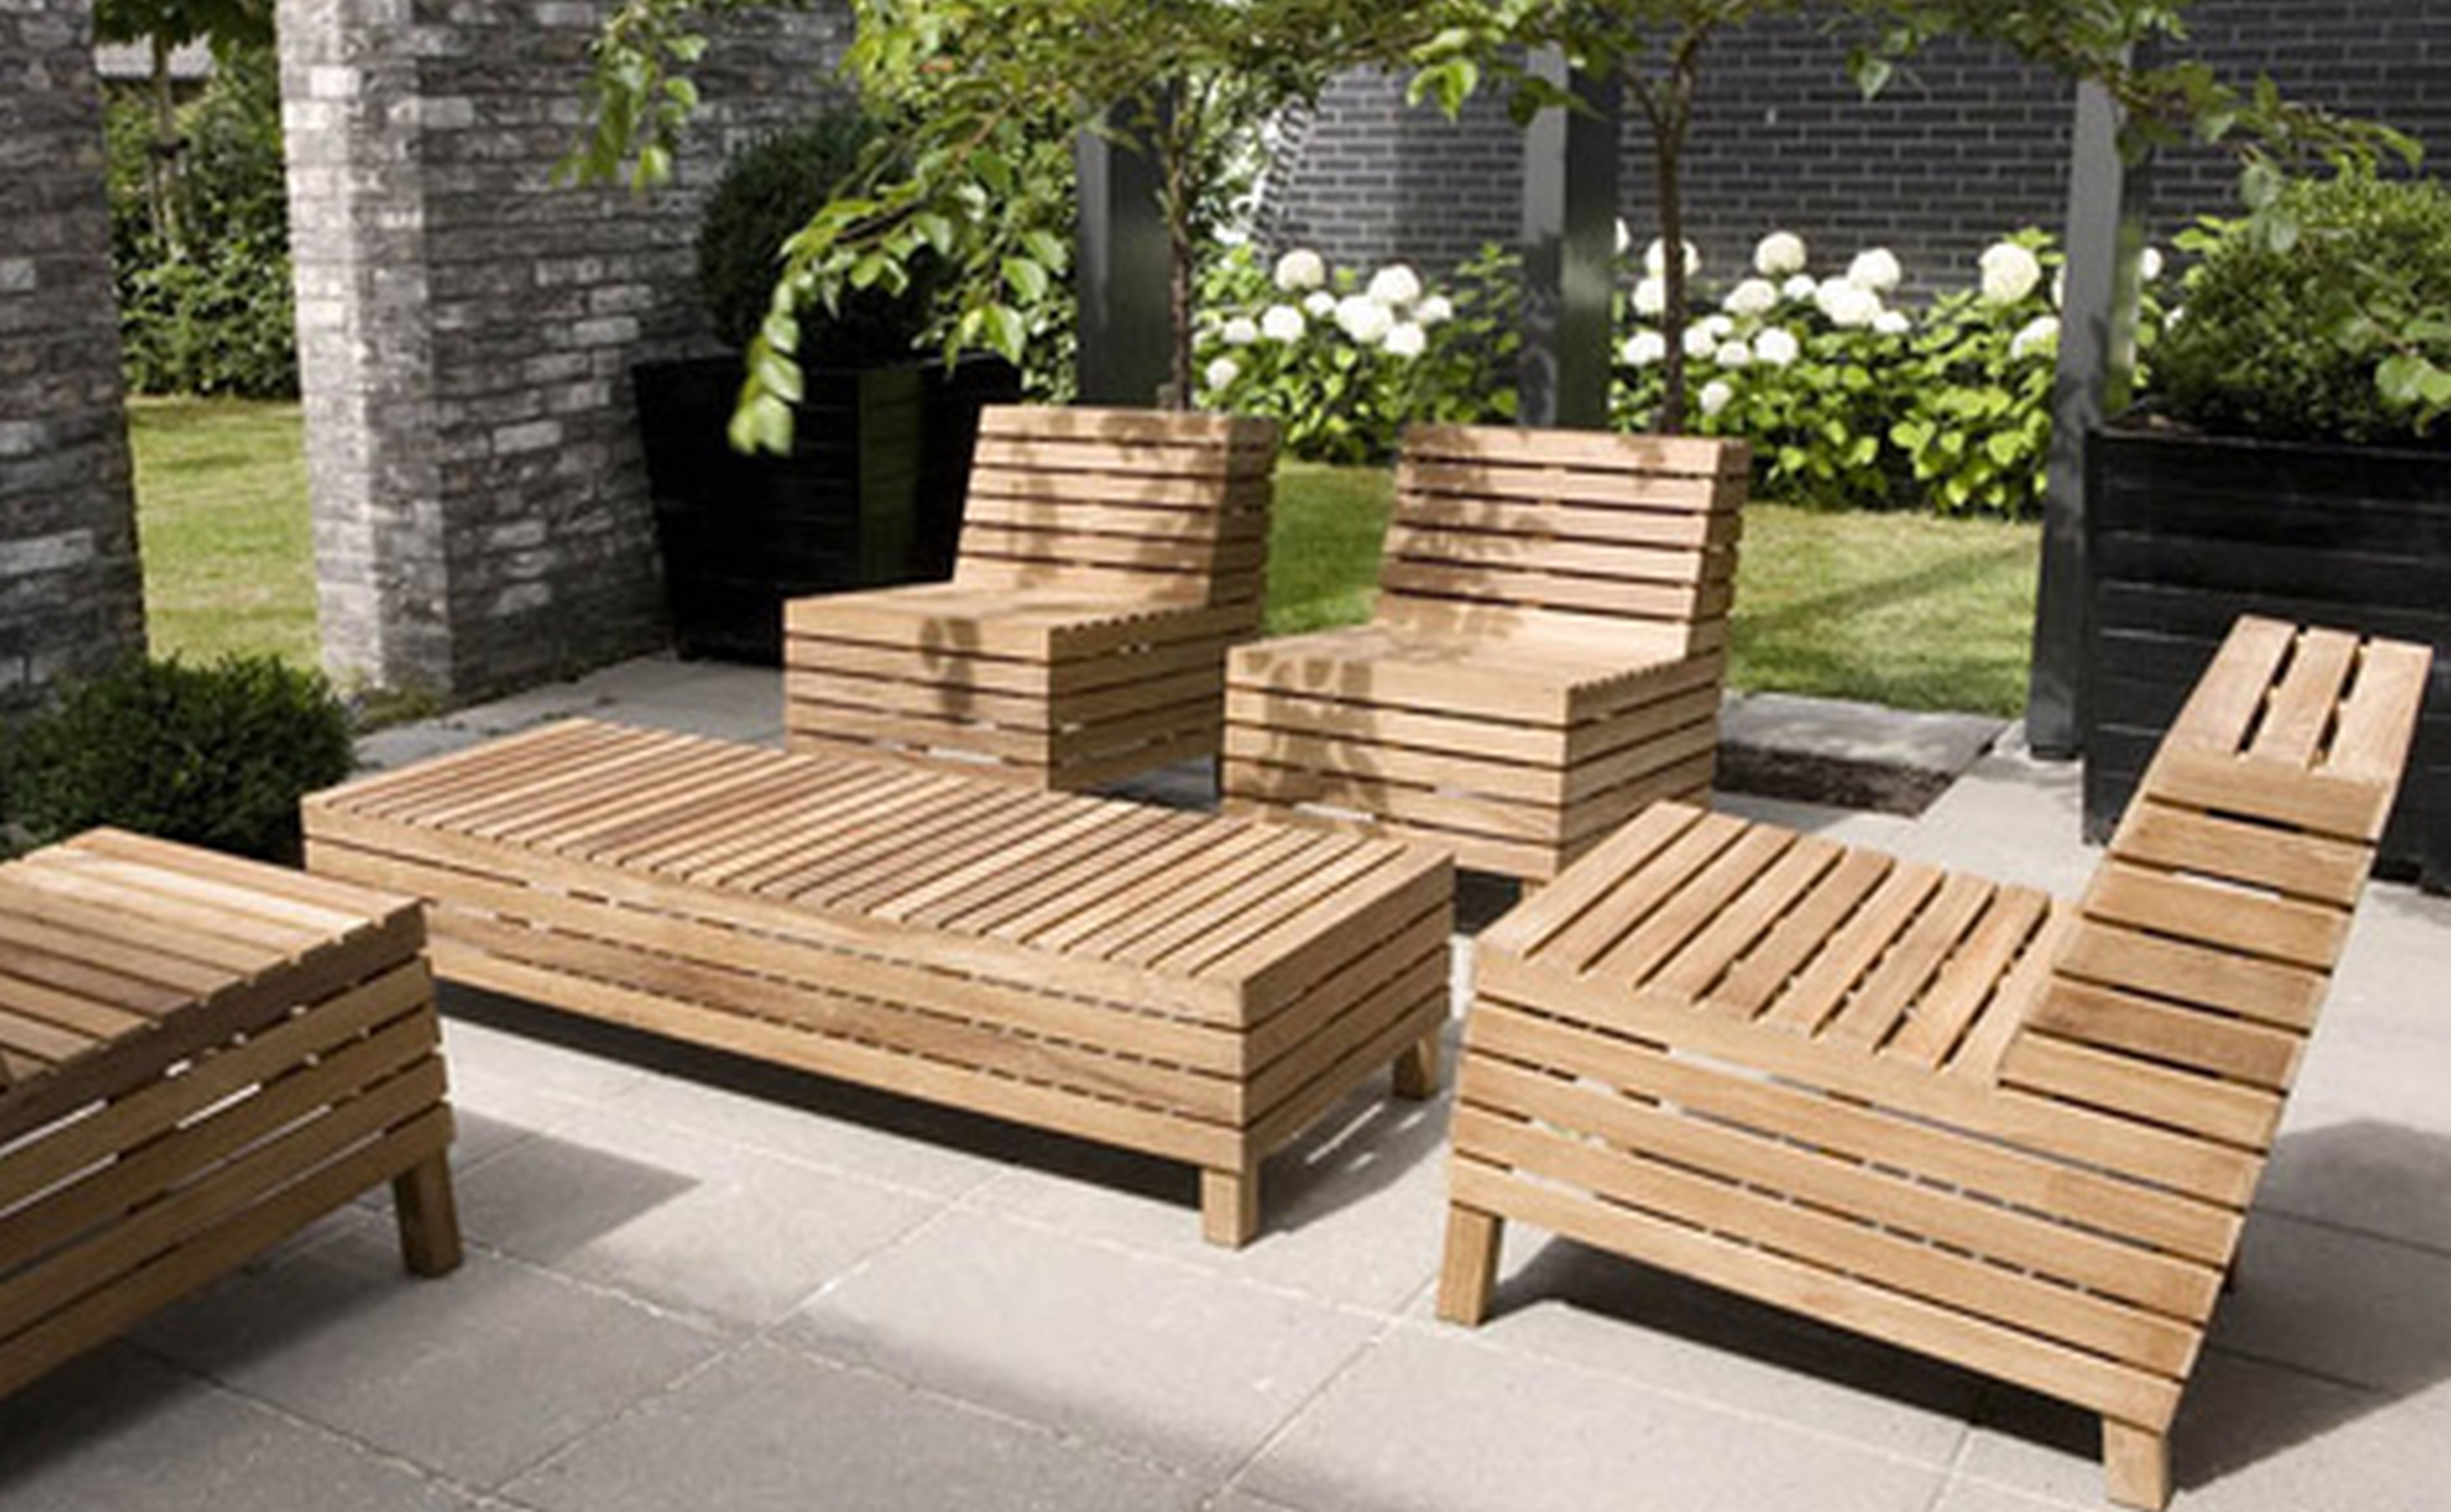 Patio Furniture Near Me — Teak Furnitures : High Demand Of Teak Within Famous Outdoor Sofas And Chairs (View 17 of 20)